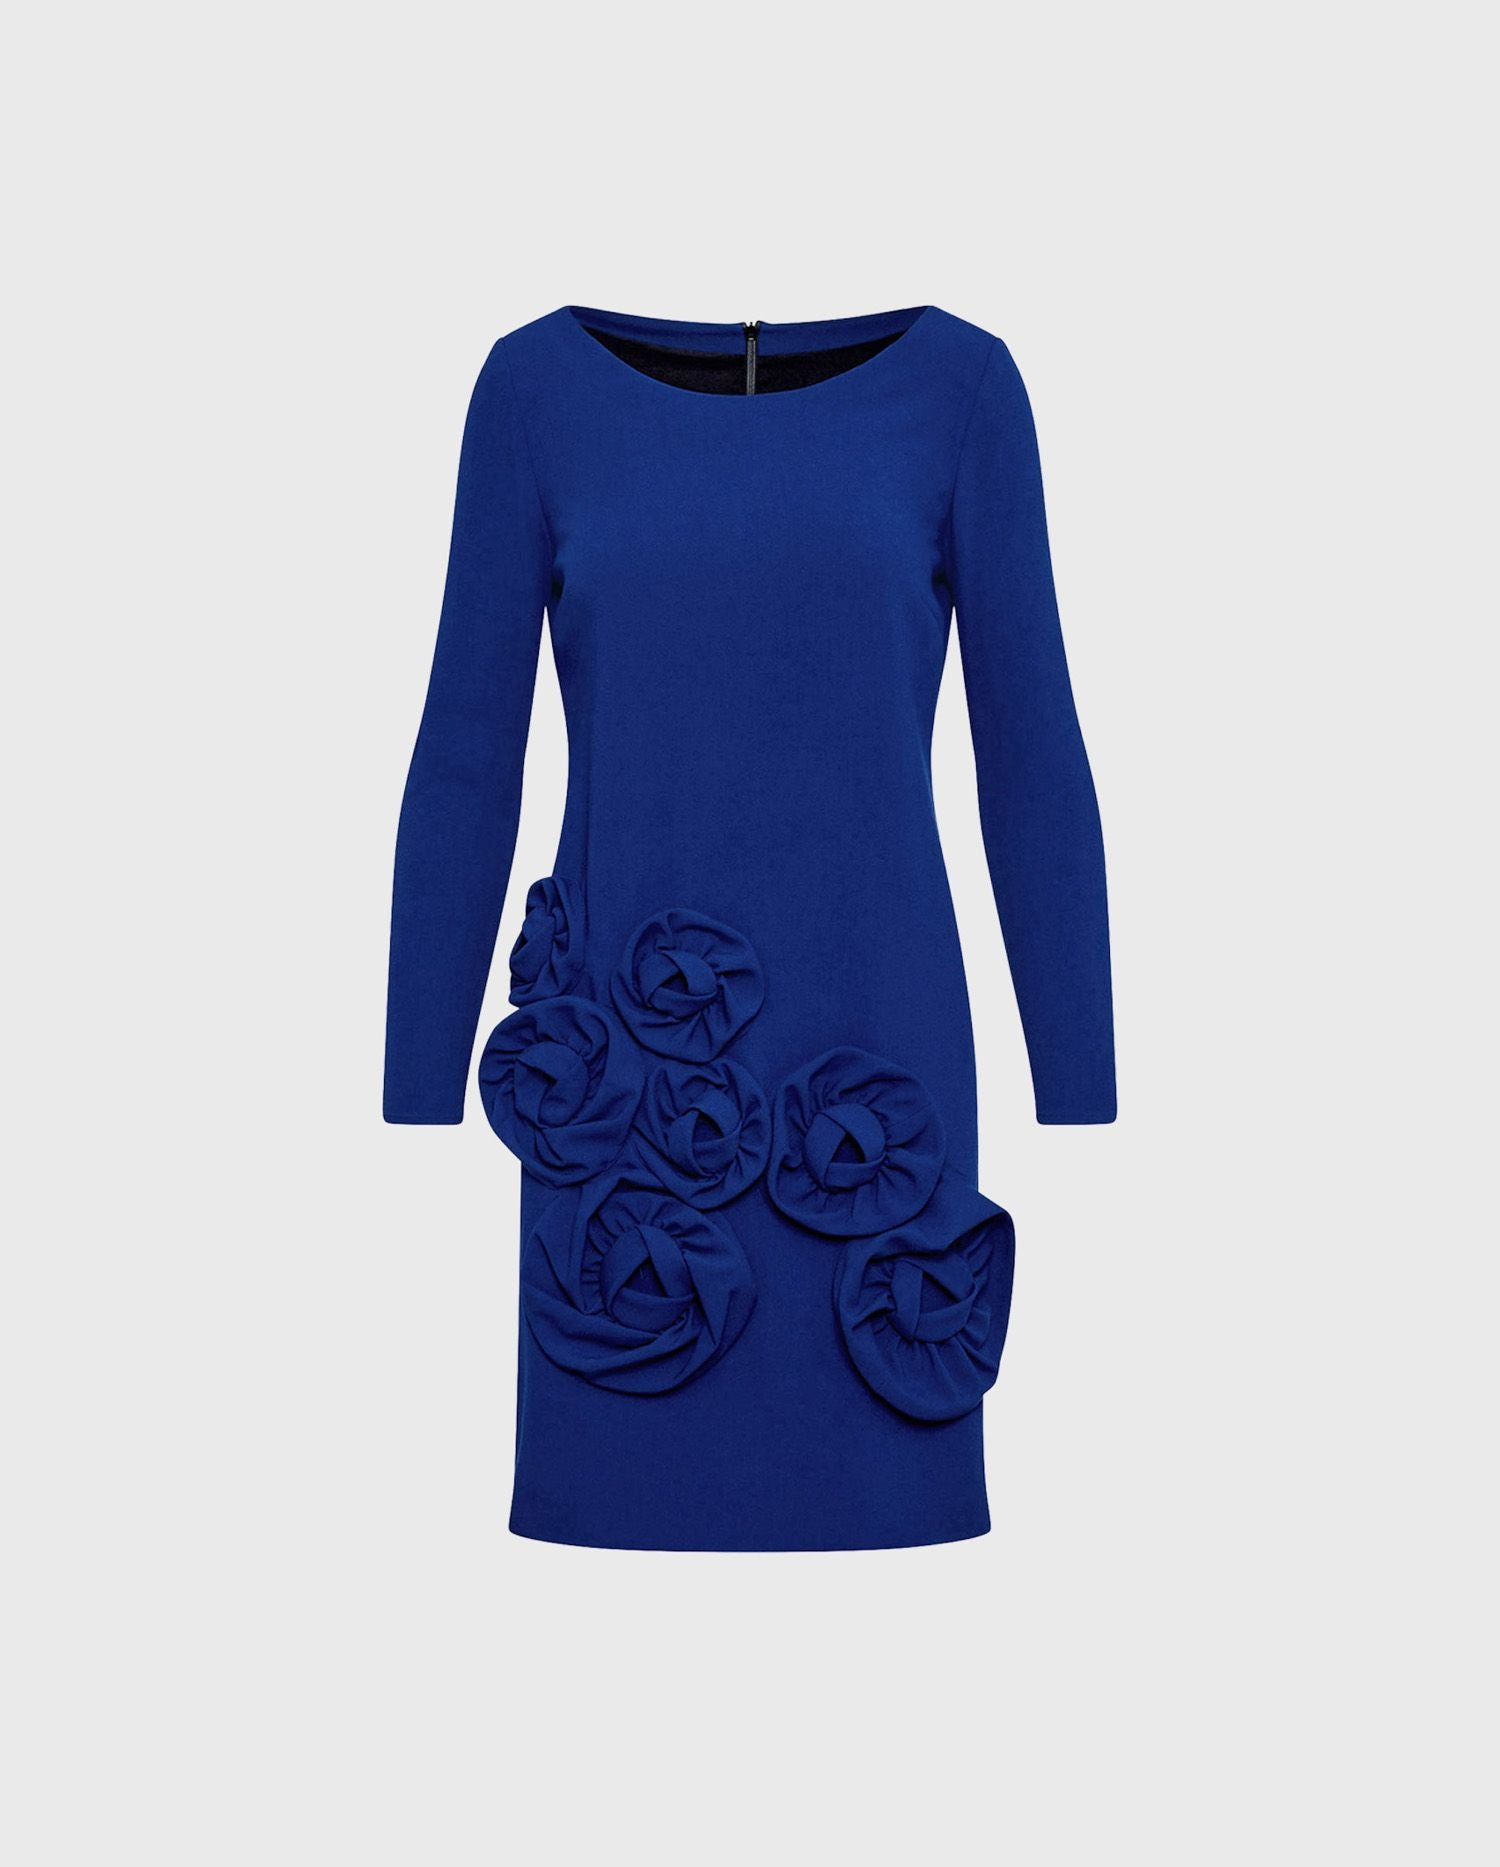 Both elegant and statement making the LAVONNA - ULTRA blue cocktail dress will make sure your arrival in style.